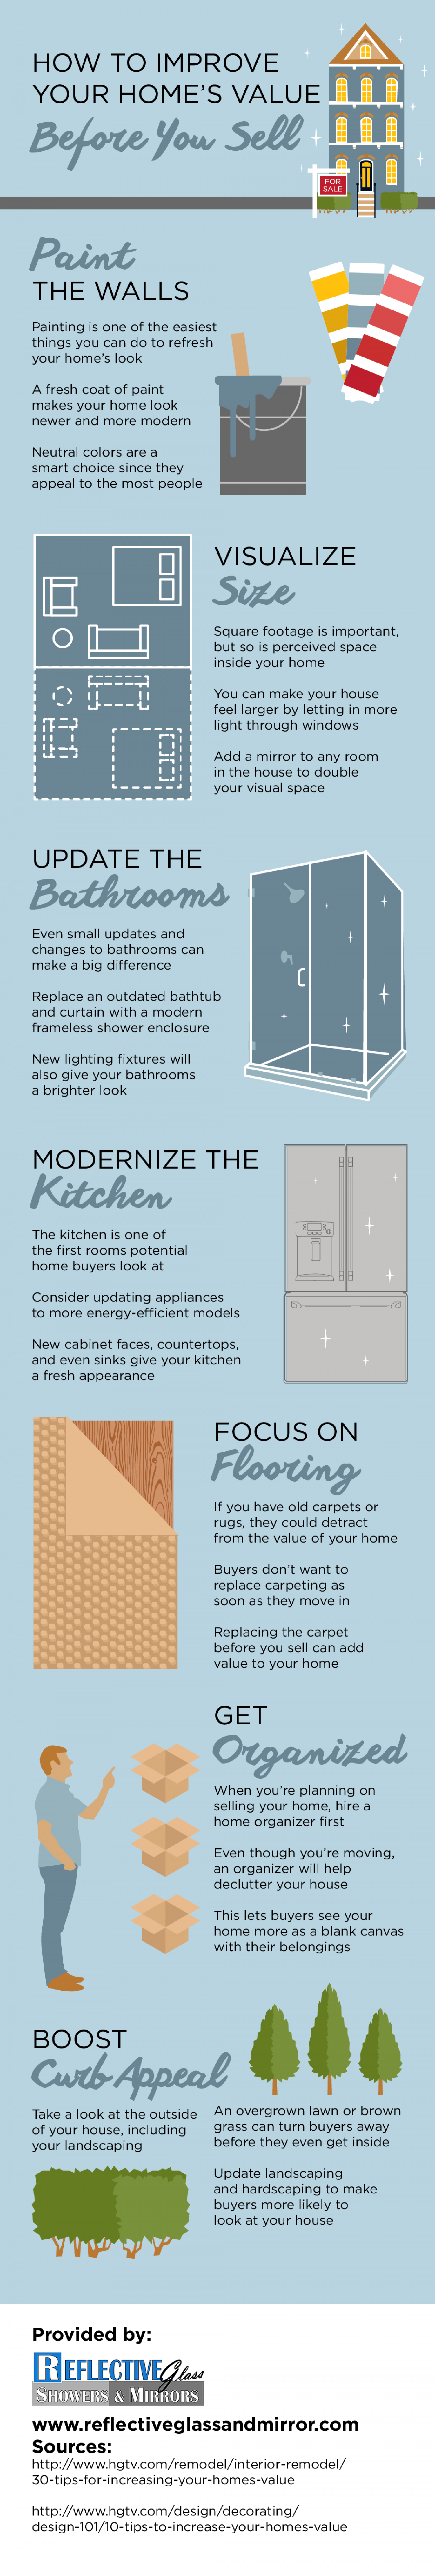 How to Improve Your Home's Value Before You Sell Infographic